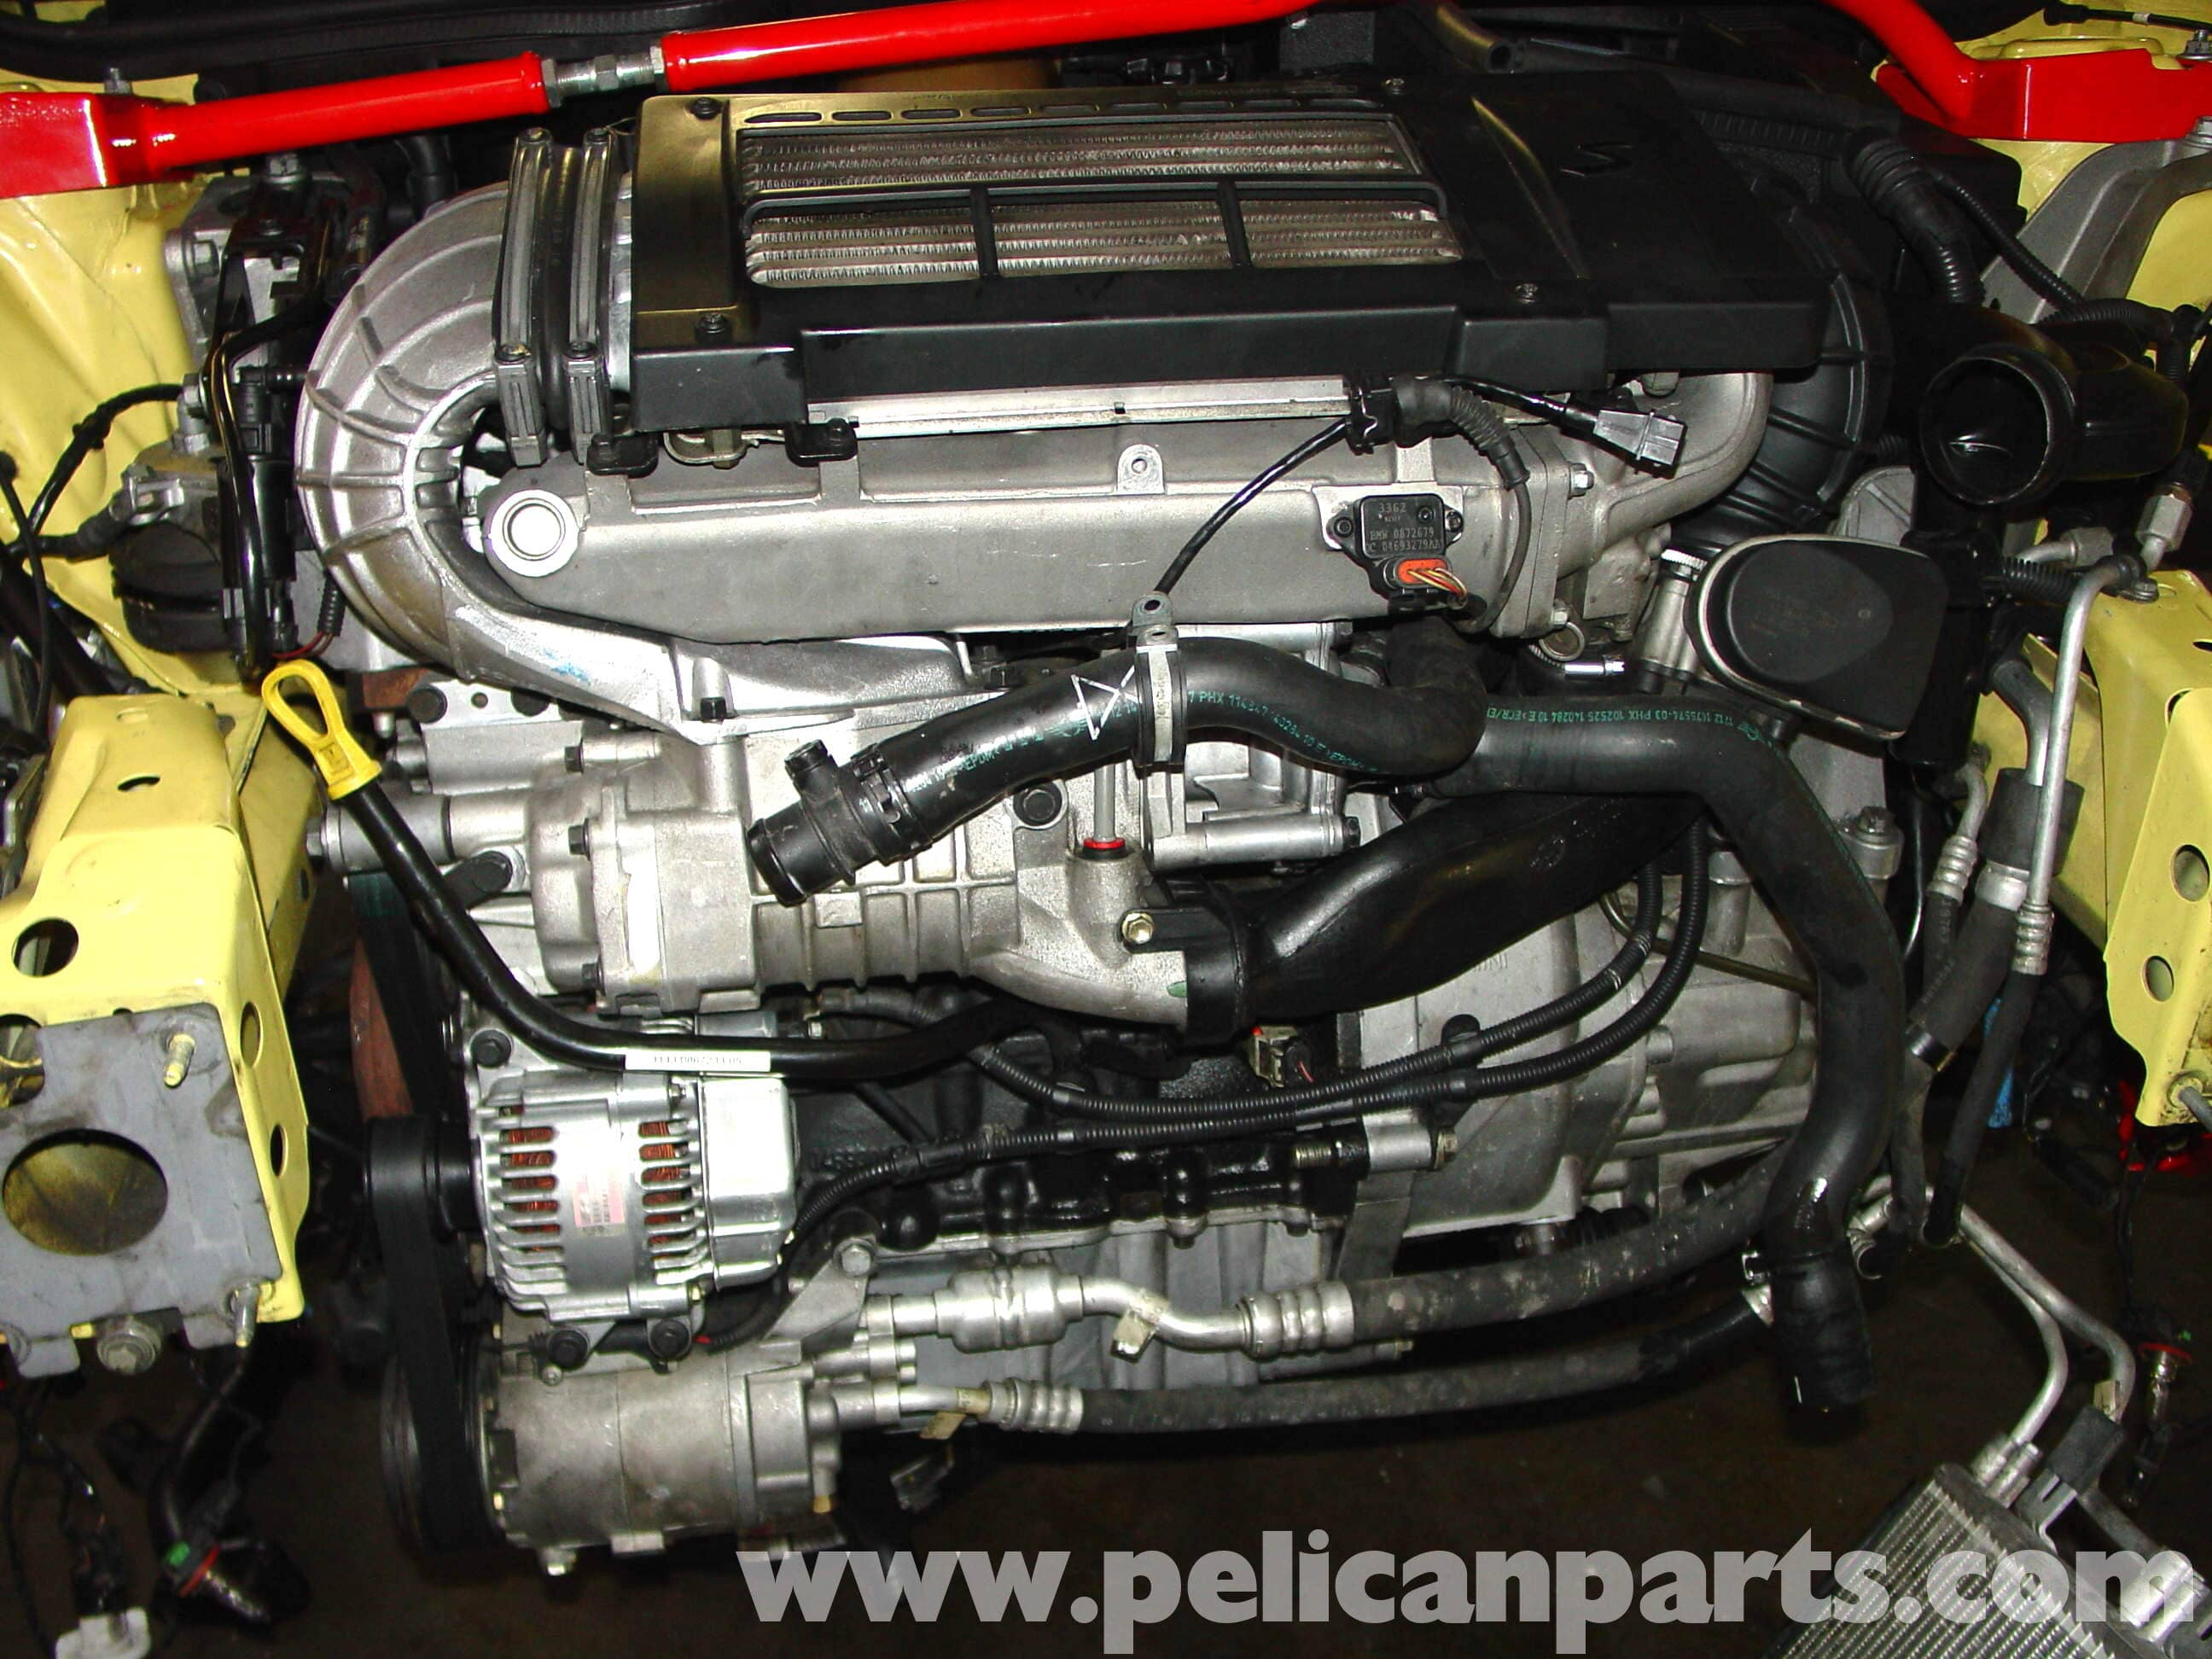 Pic11 mini cooper radiator, thermostat and hose replacement (r50 r52 r53 r50 mini cooper wiring diagram at eliteediting.co